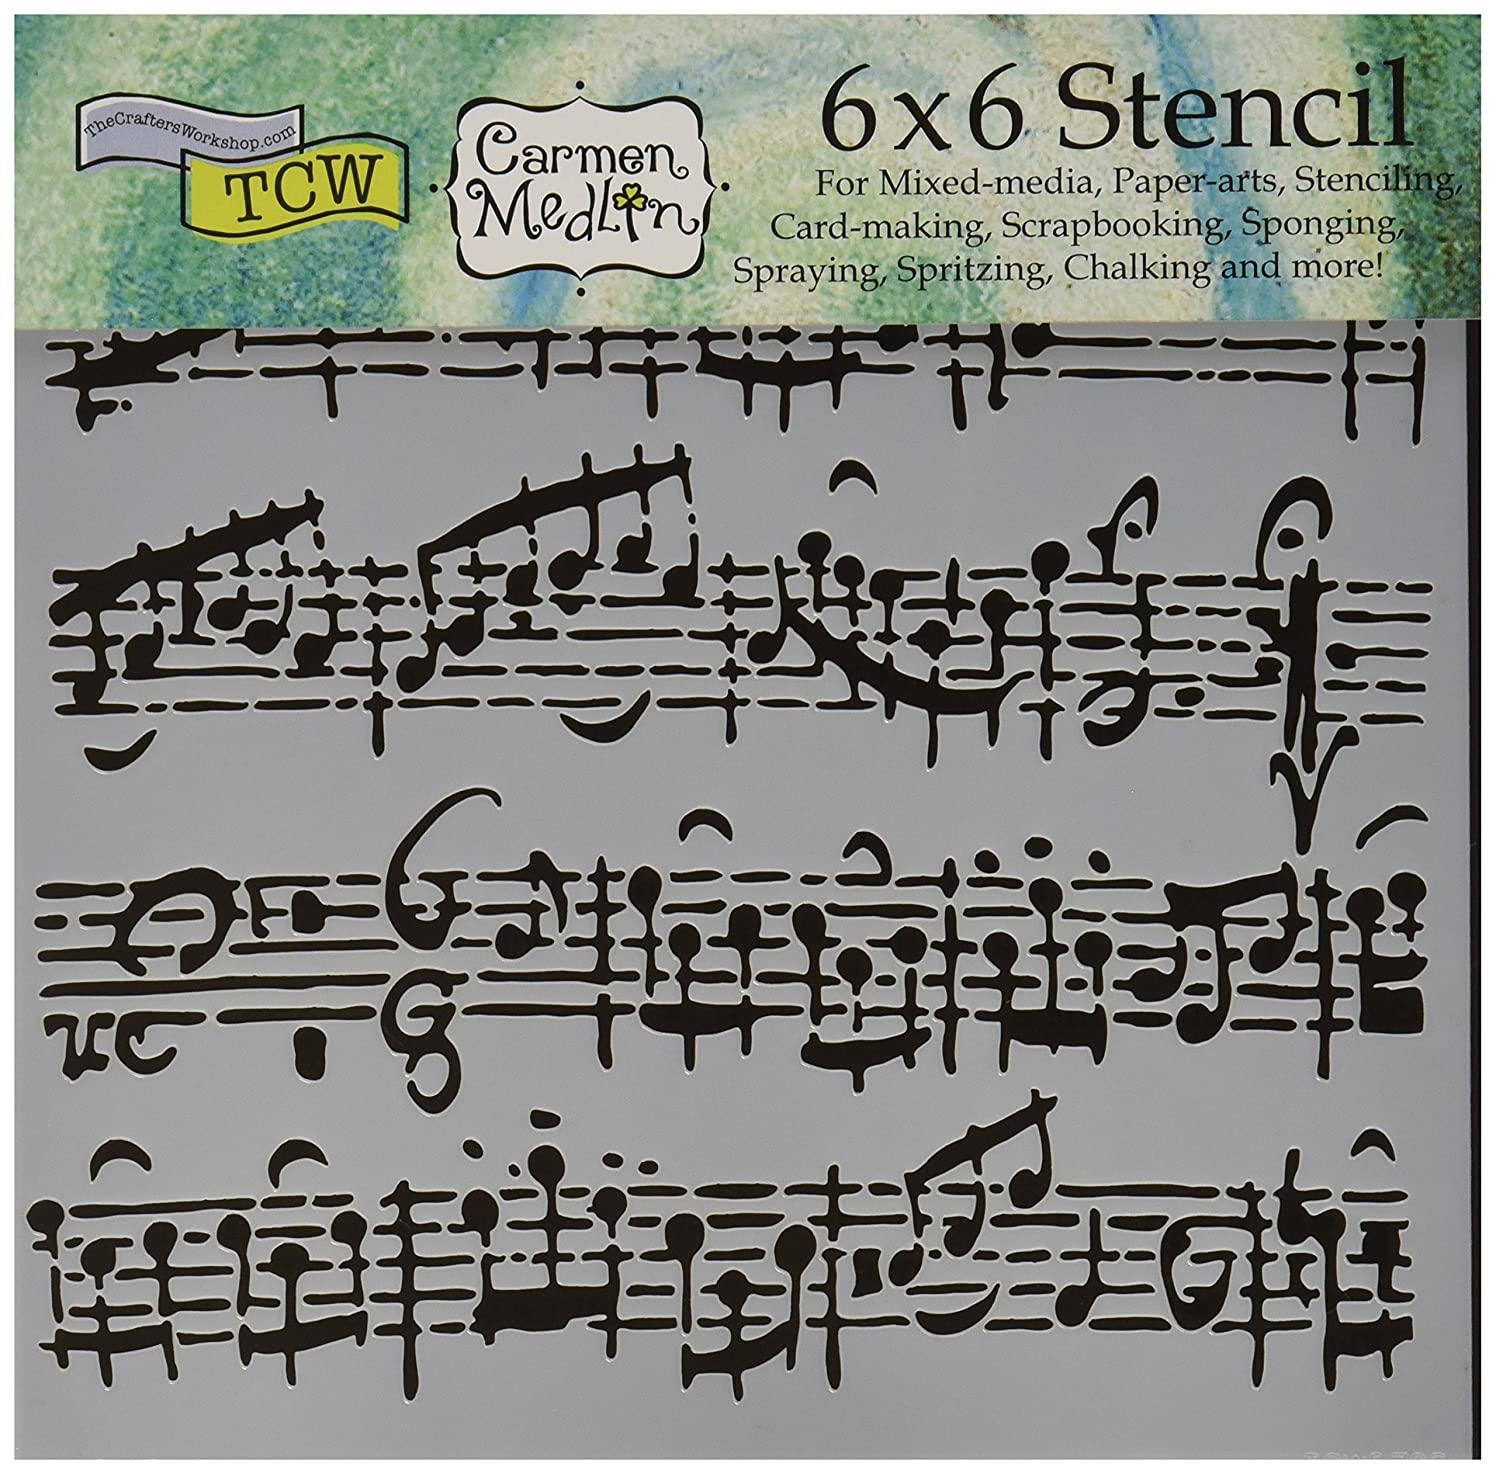 CRAFTERS WORKSHOP TCW6X6-579 Sheet Music Crafter's Workshop Template, 6 by 6